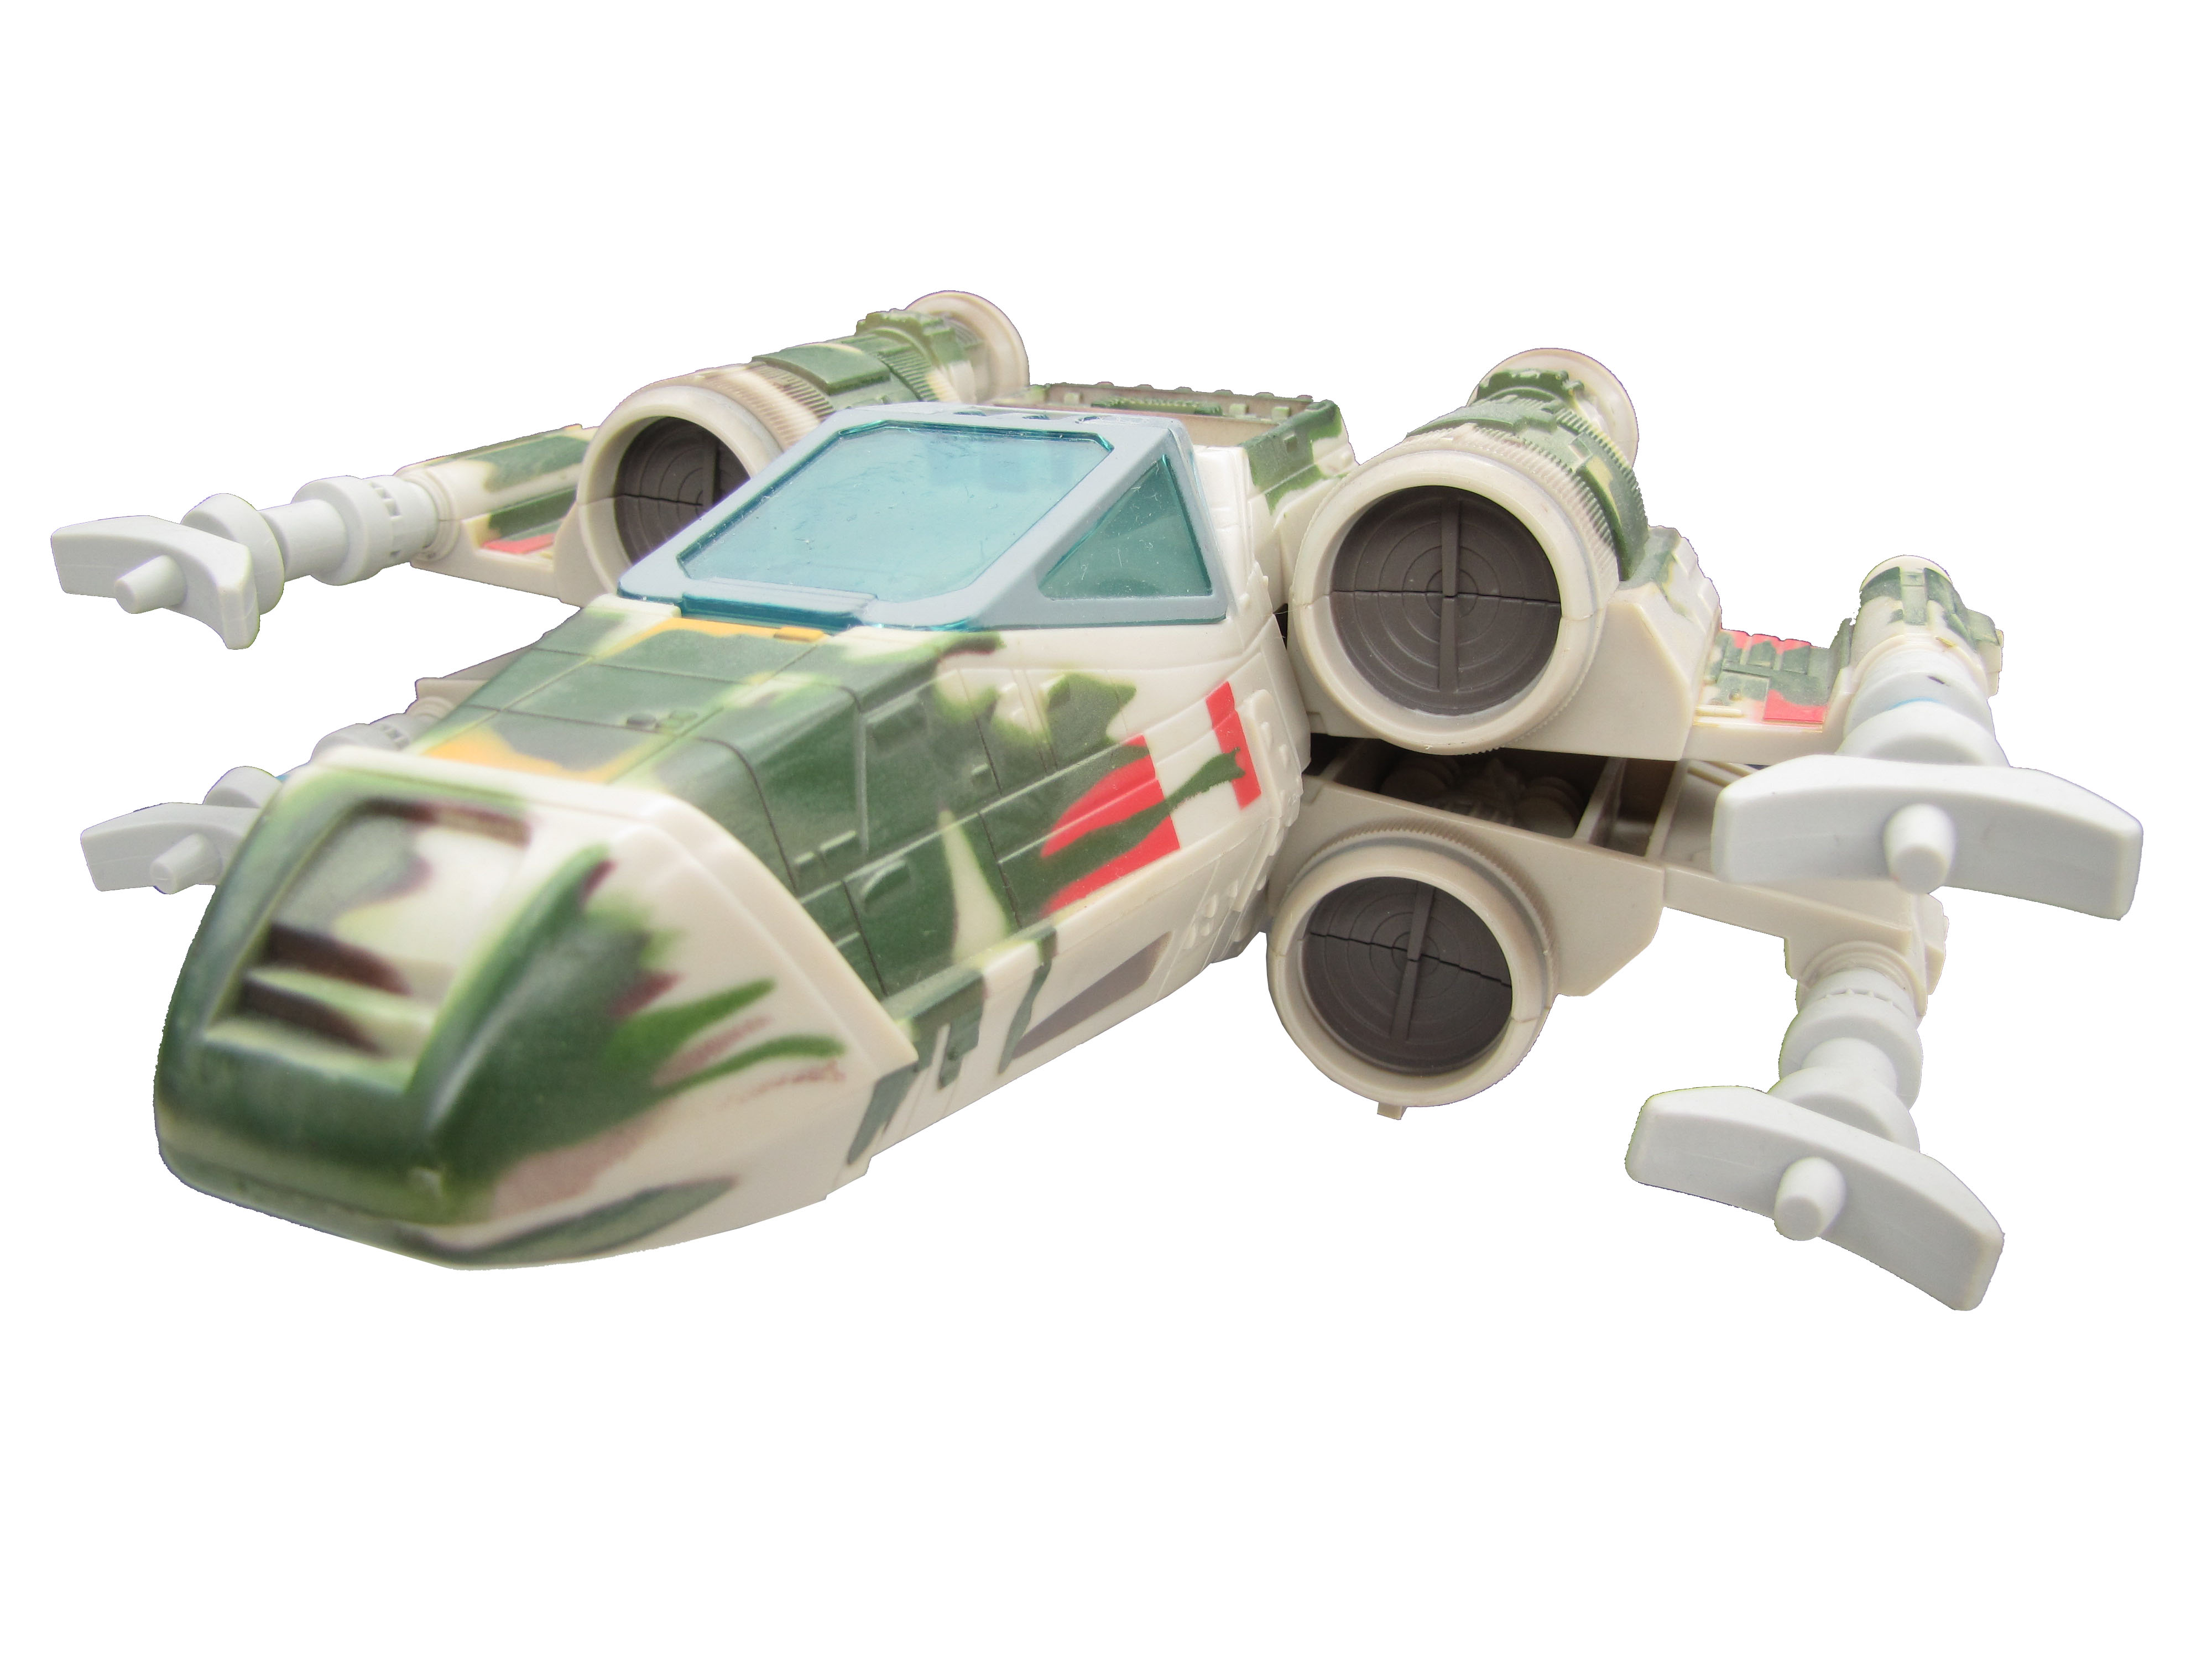 Star Wars Galactic Heroes X-WING DAGOBAH LANDING X-WING FIGHTER